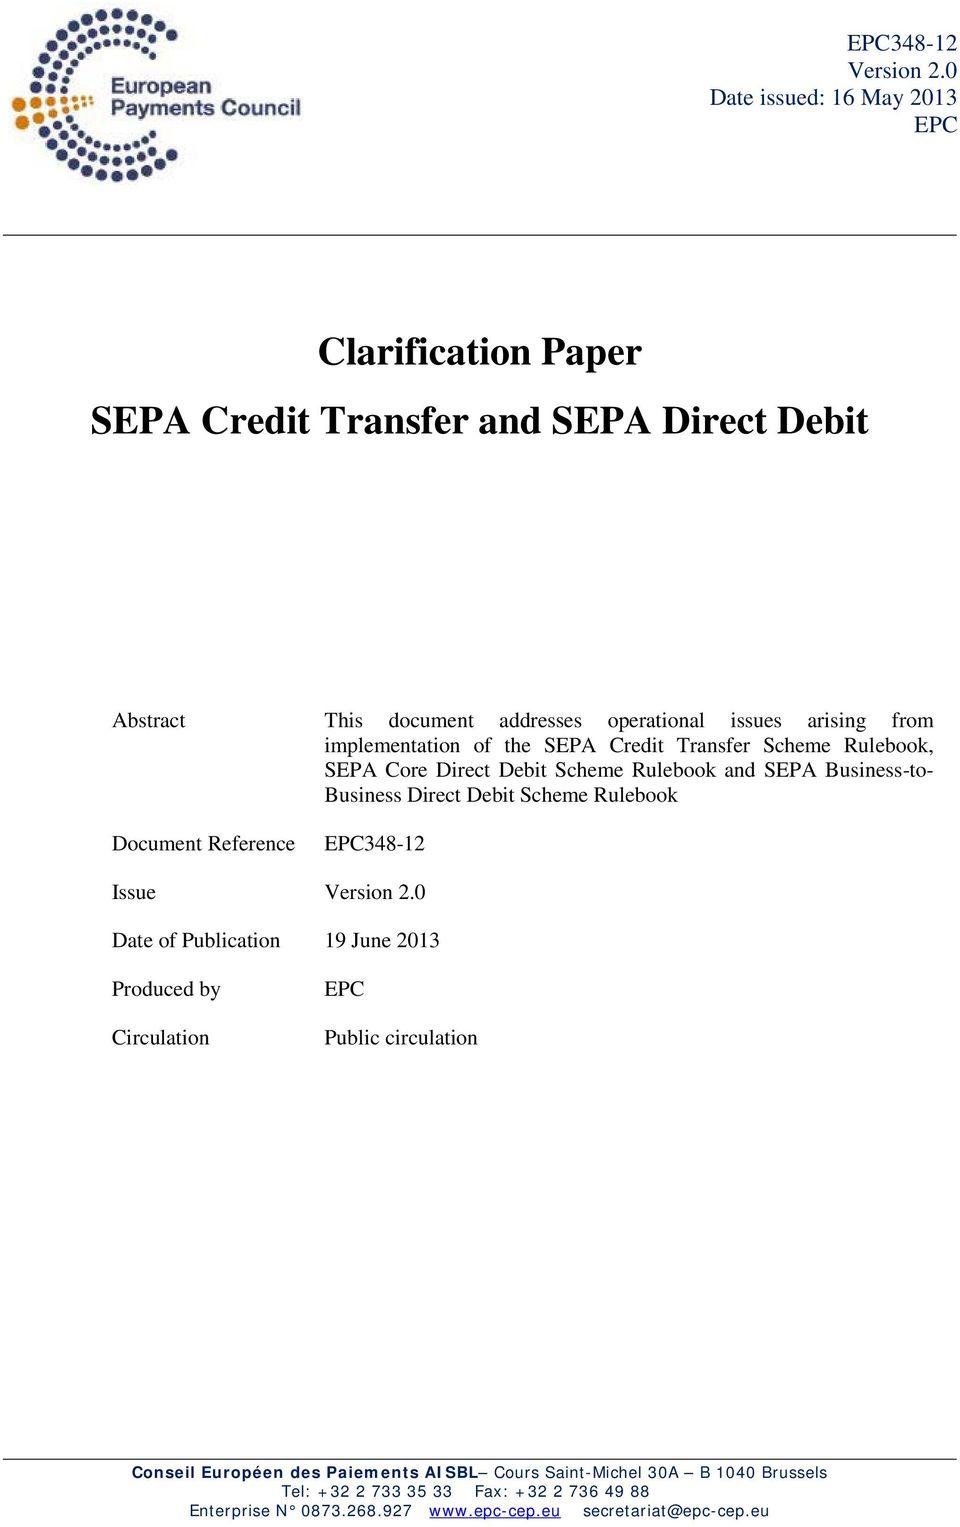 implementation of the SEPA Credit Transfer Scheme Rulebook, SEPA Core Direct Debit Scheme Rulebook and SEPA Business-to- Business Direct Debit Scheme Rulebook